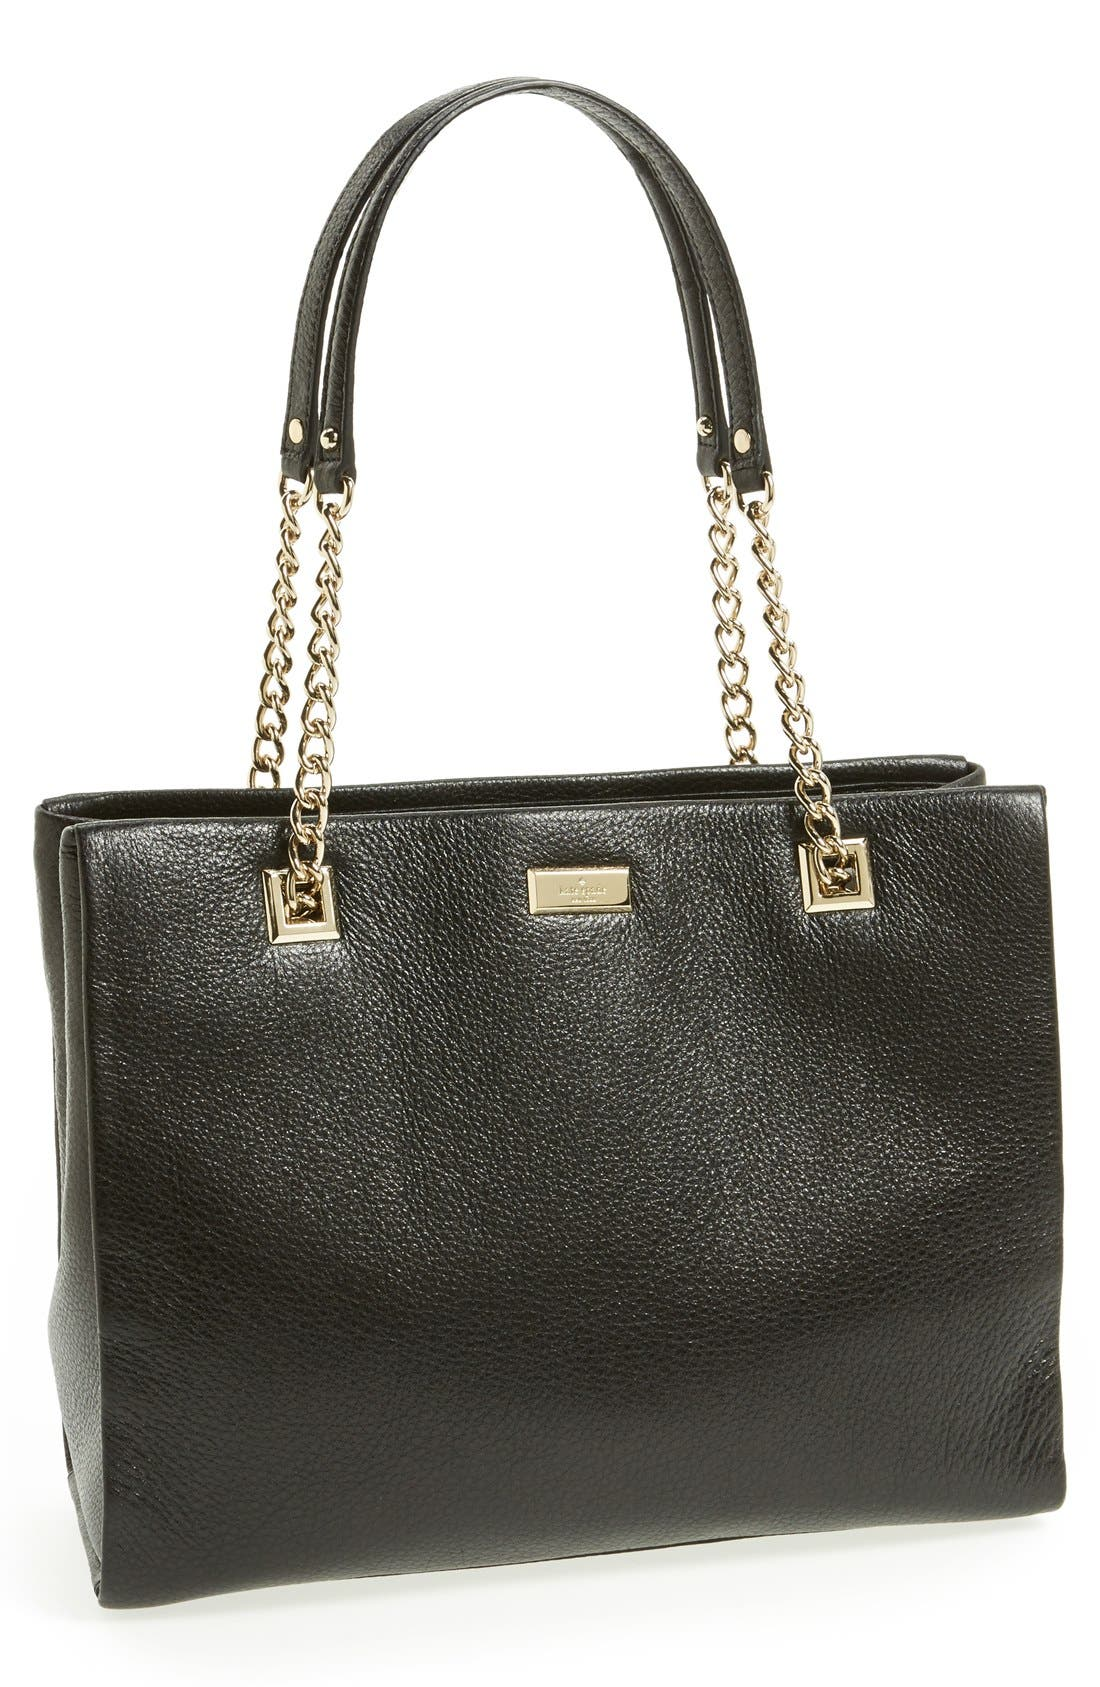 Alternate Image 1 Selected - kate spade new york 'sedgewick lane - large phoebe' shoulder bag